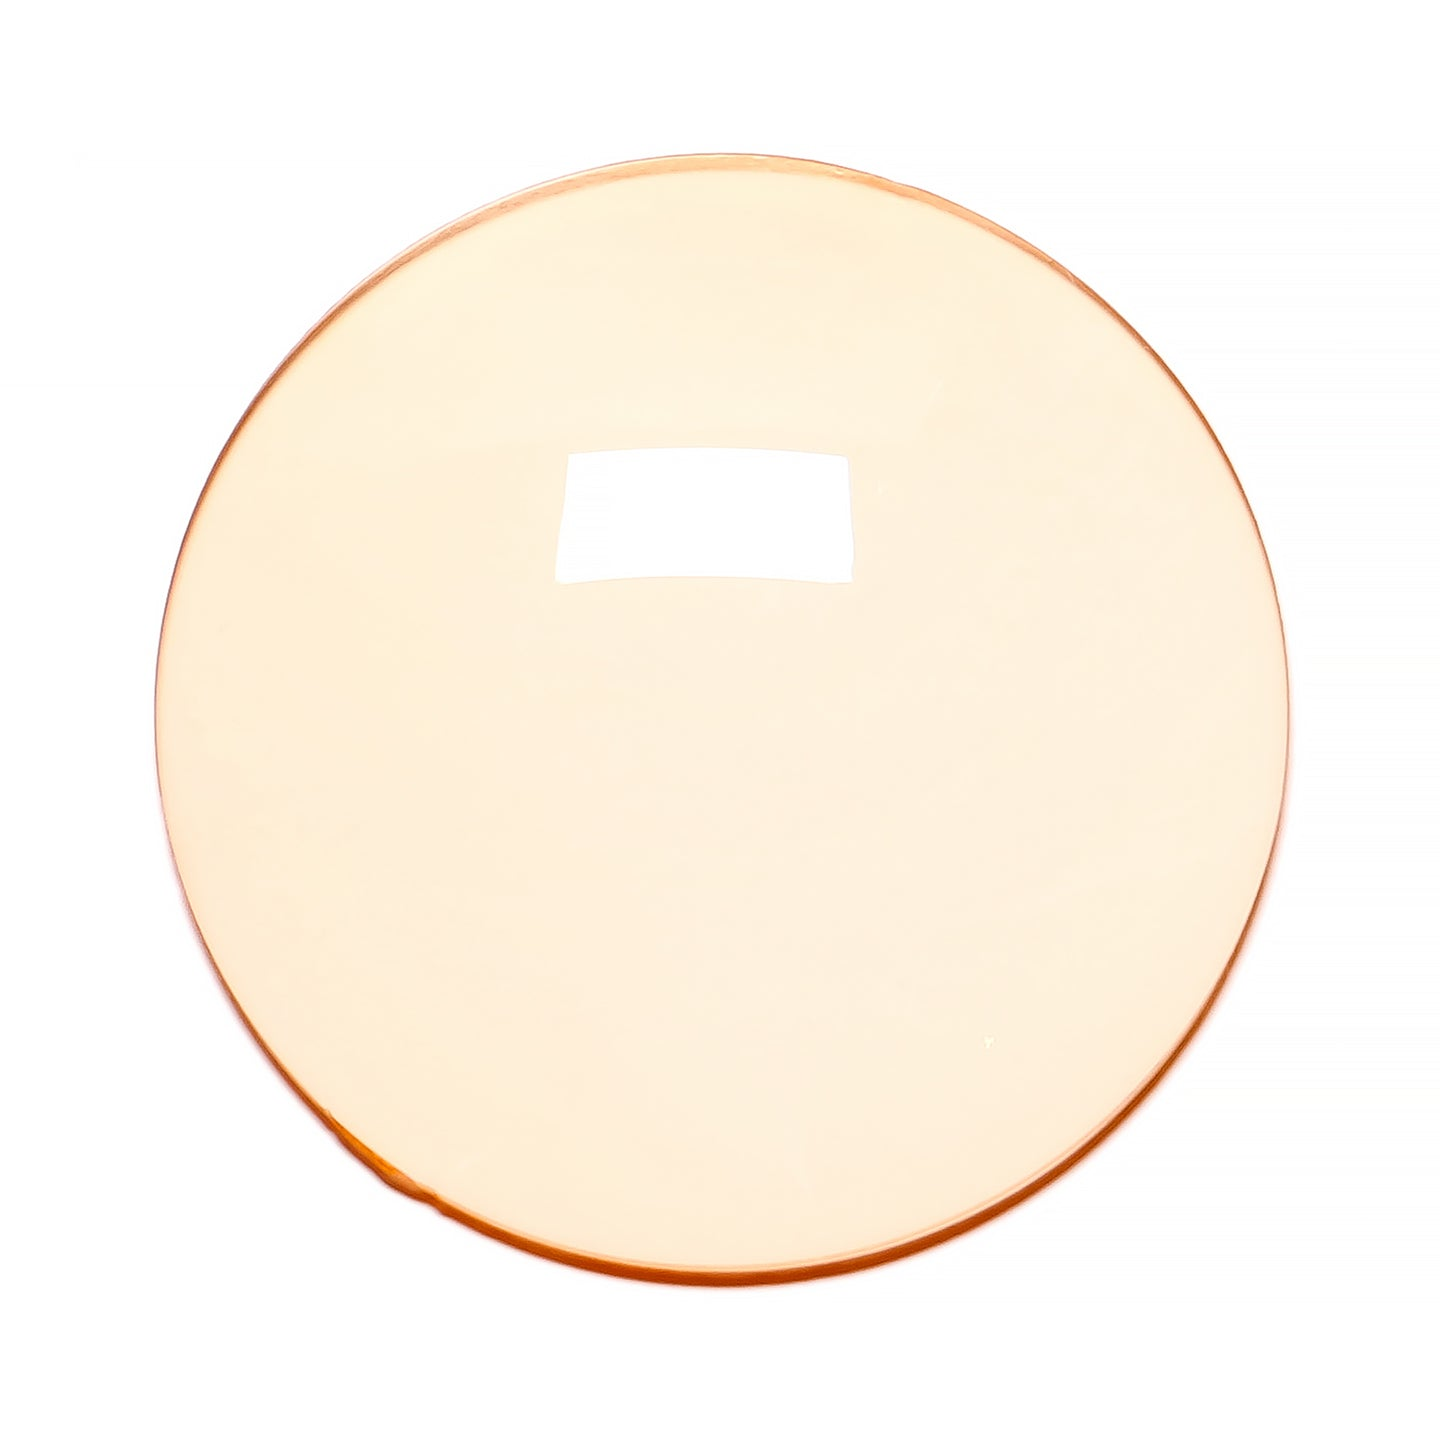 007 - Light Orange Solid Regular Curve Lens